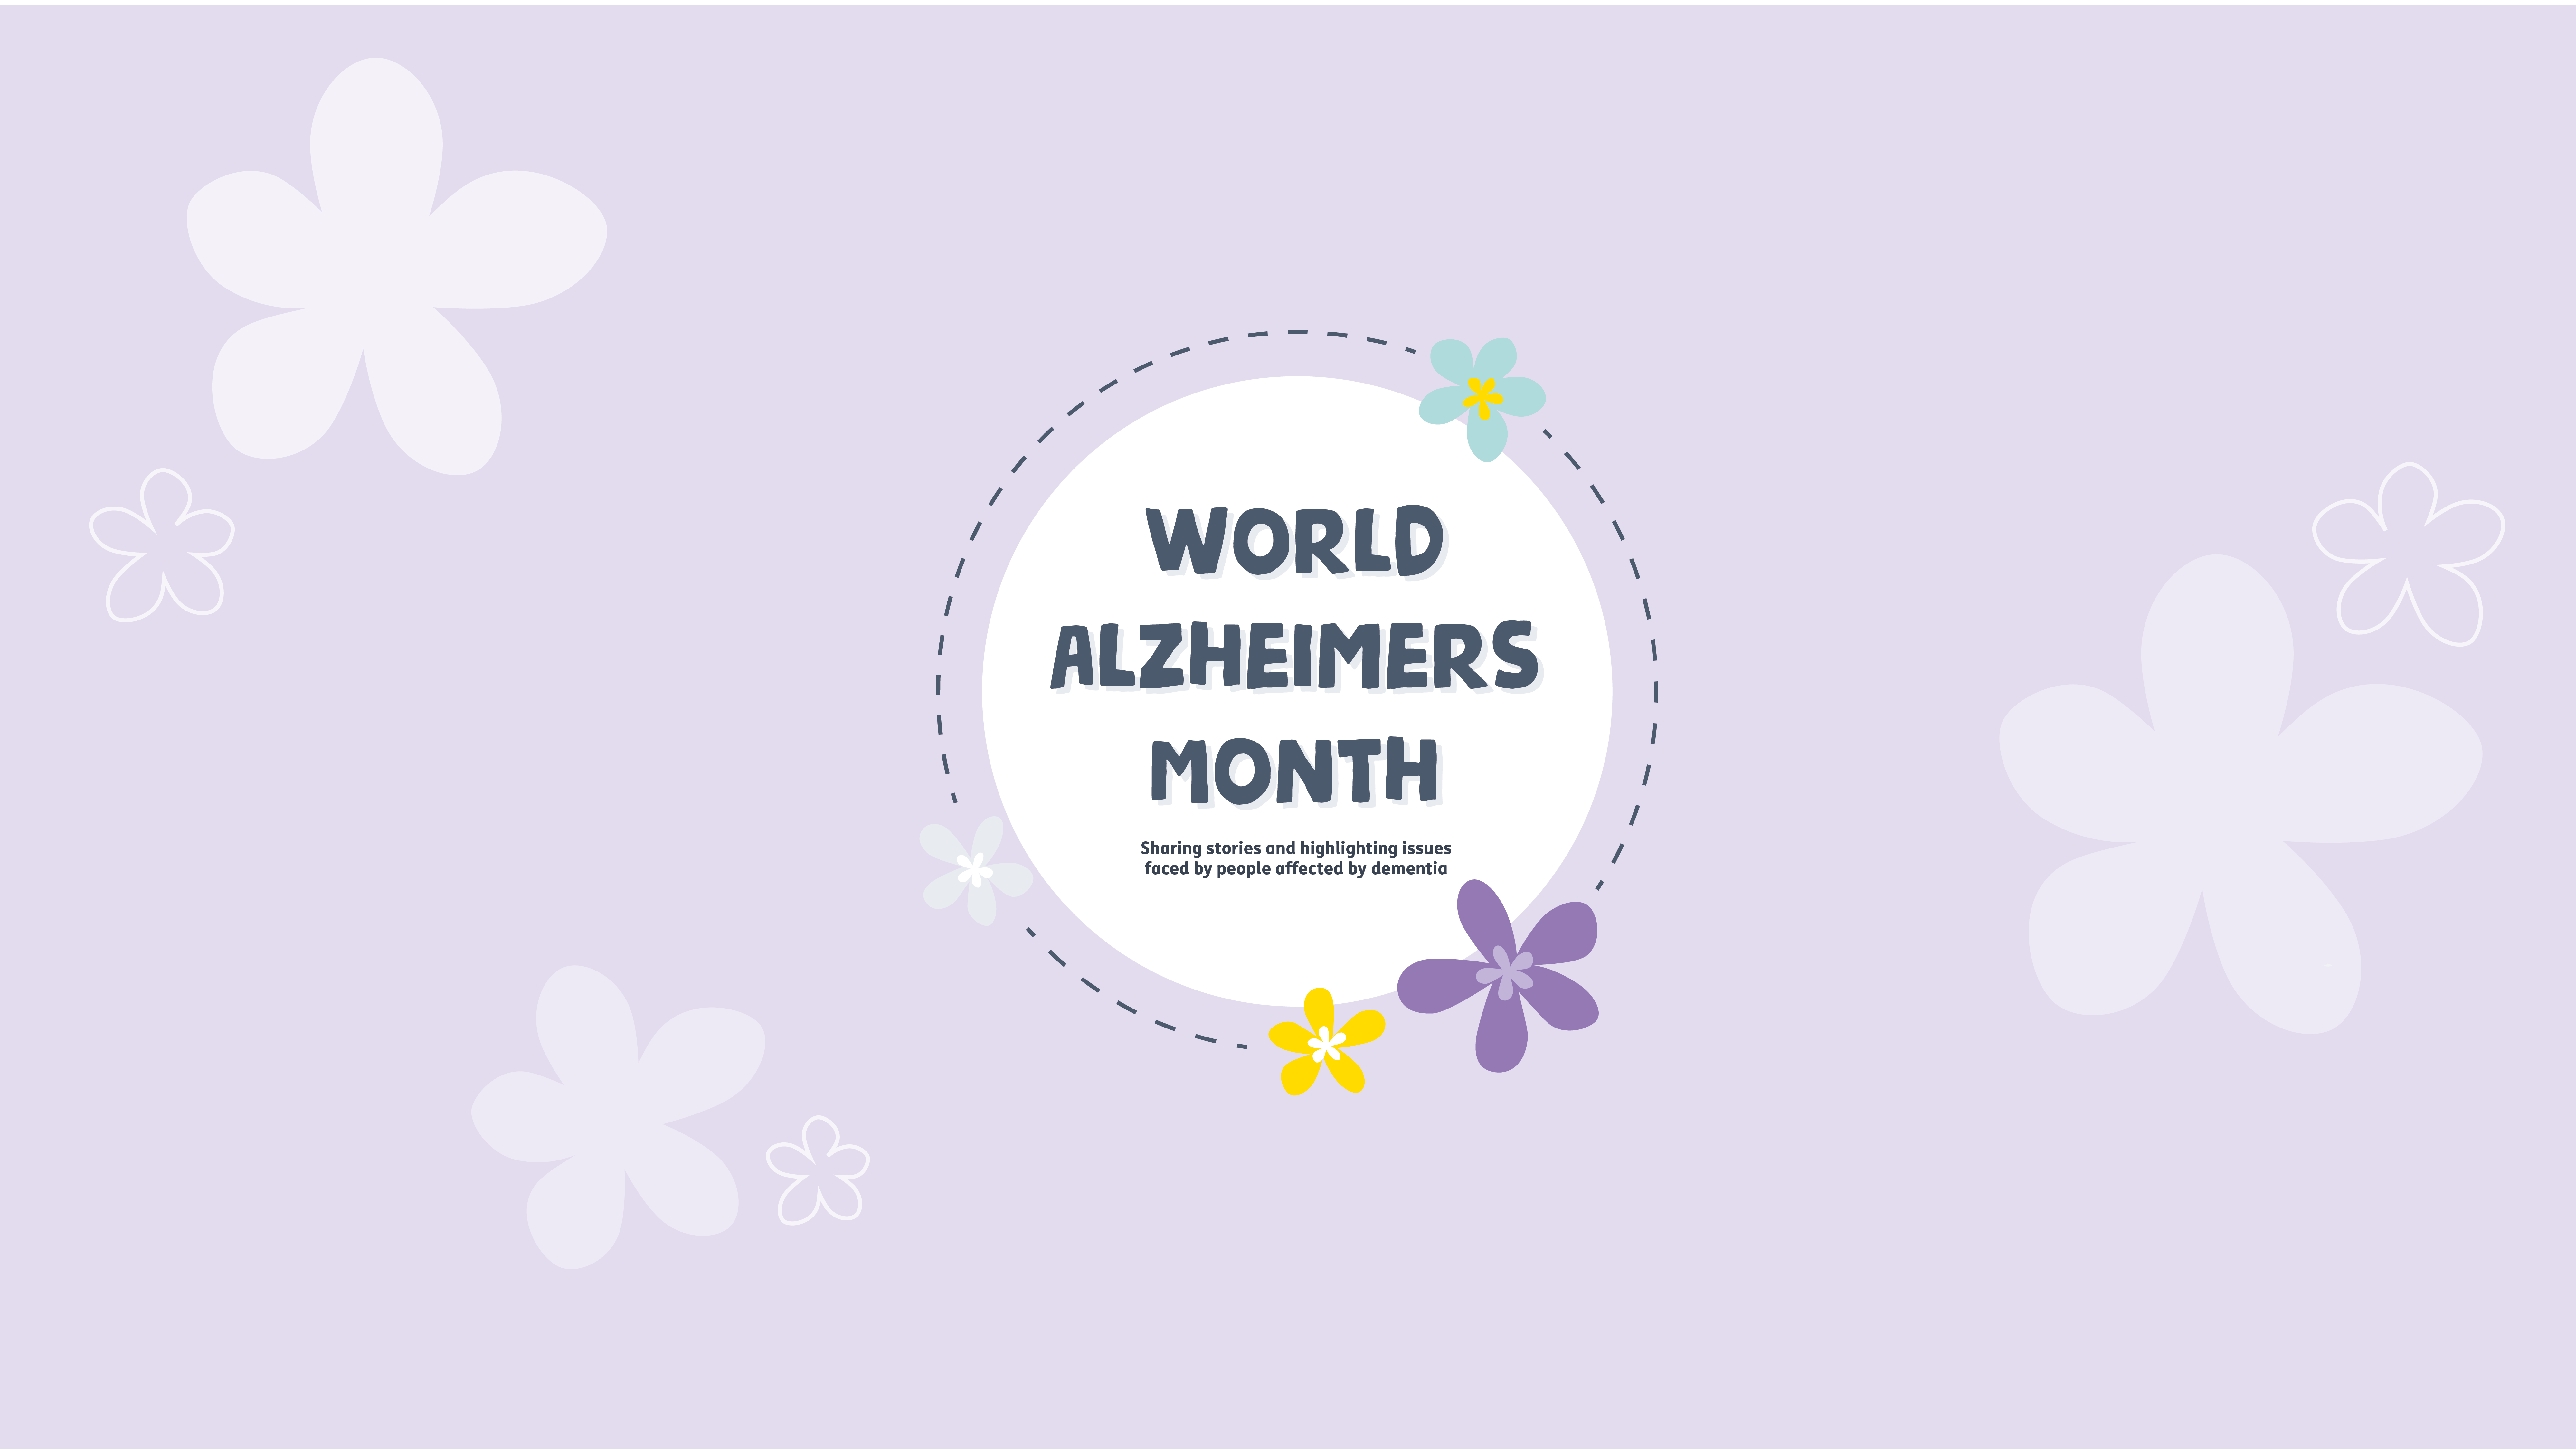 Share your stories for Alzheimer's Awareness Month